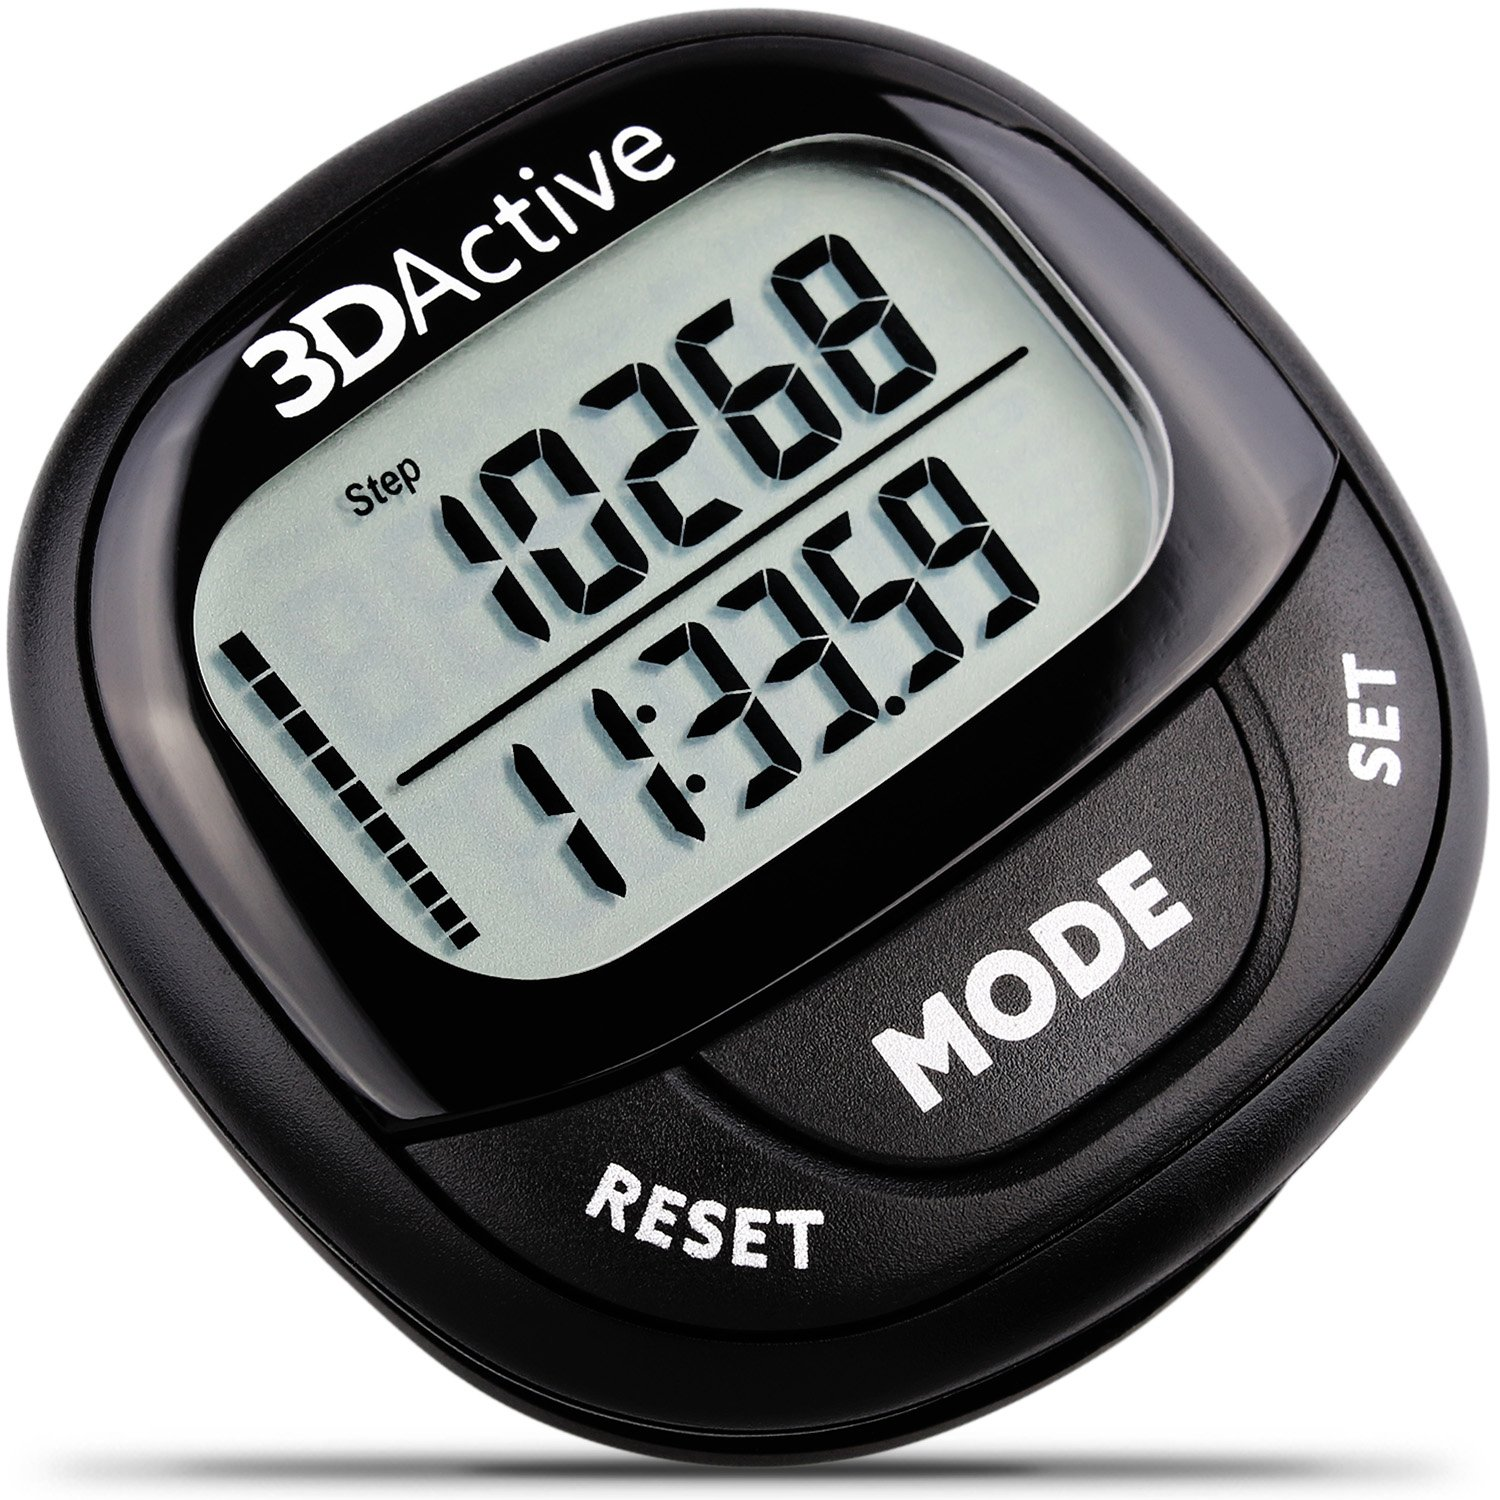 3DActive 3D Pedometer PDA-100| Best Pedometer for Walking with 30-Days Memory. Accurate Step Counter, Calorie Counter, Distance Miles/Km & Daily Target Monitor. (Black/Black)